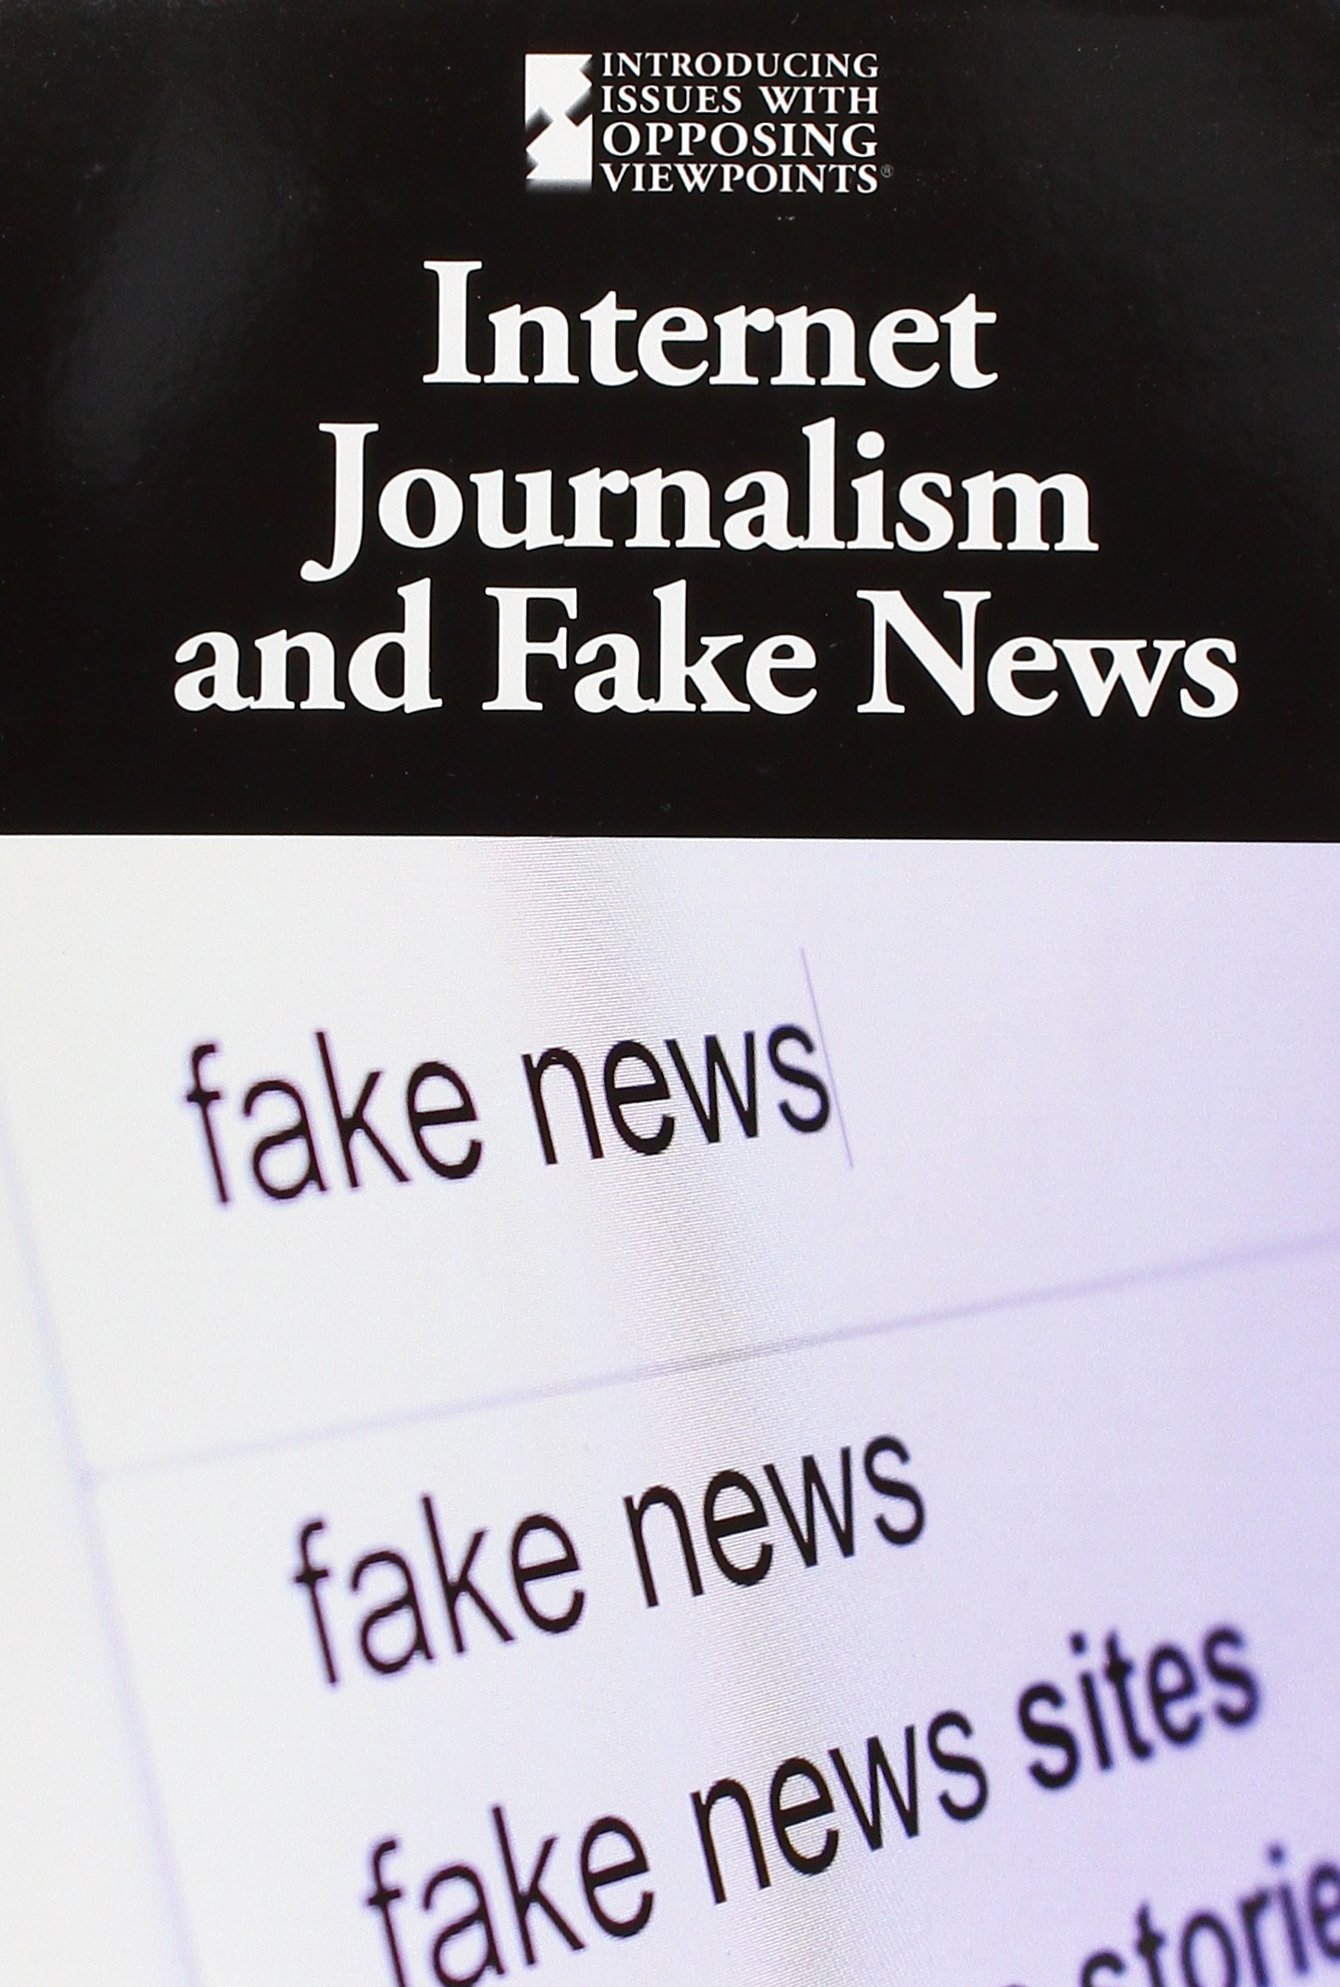 Internet Journalism and Fake News (Introducing Issues With Opposing Viewpoints)